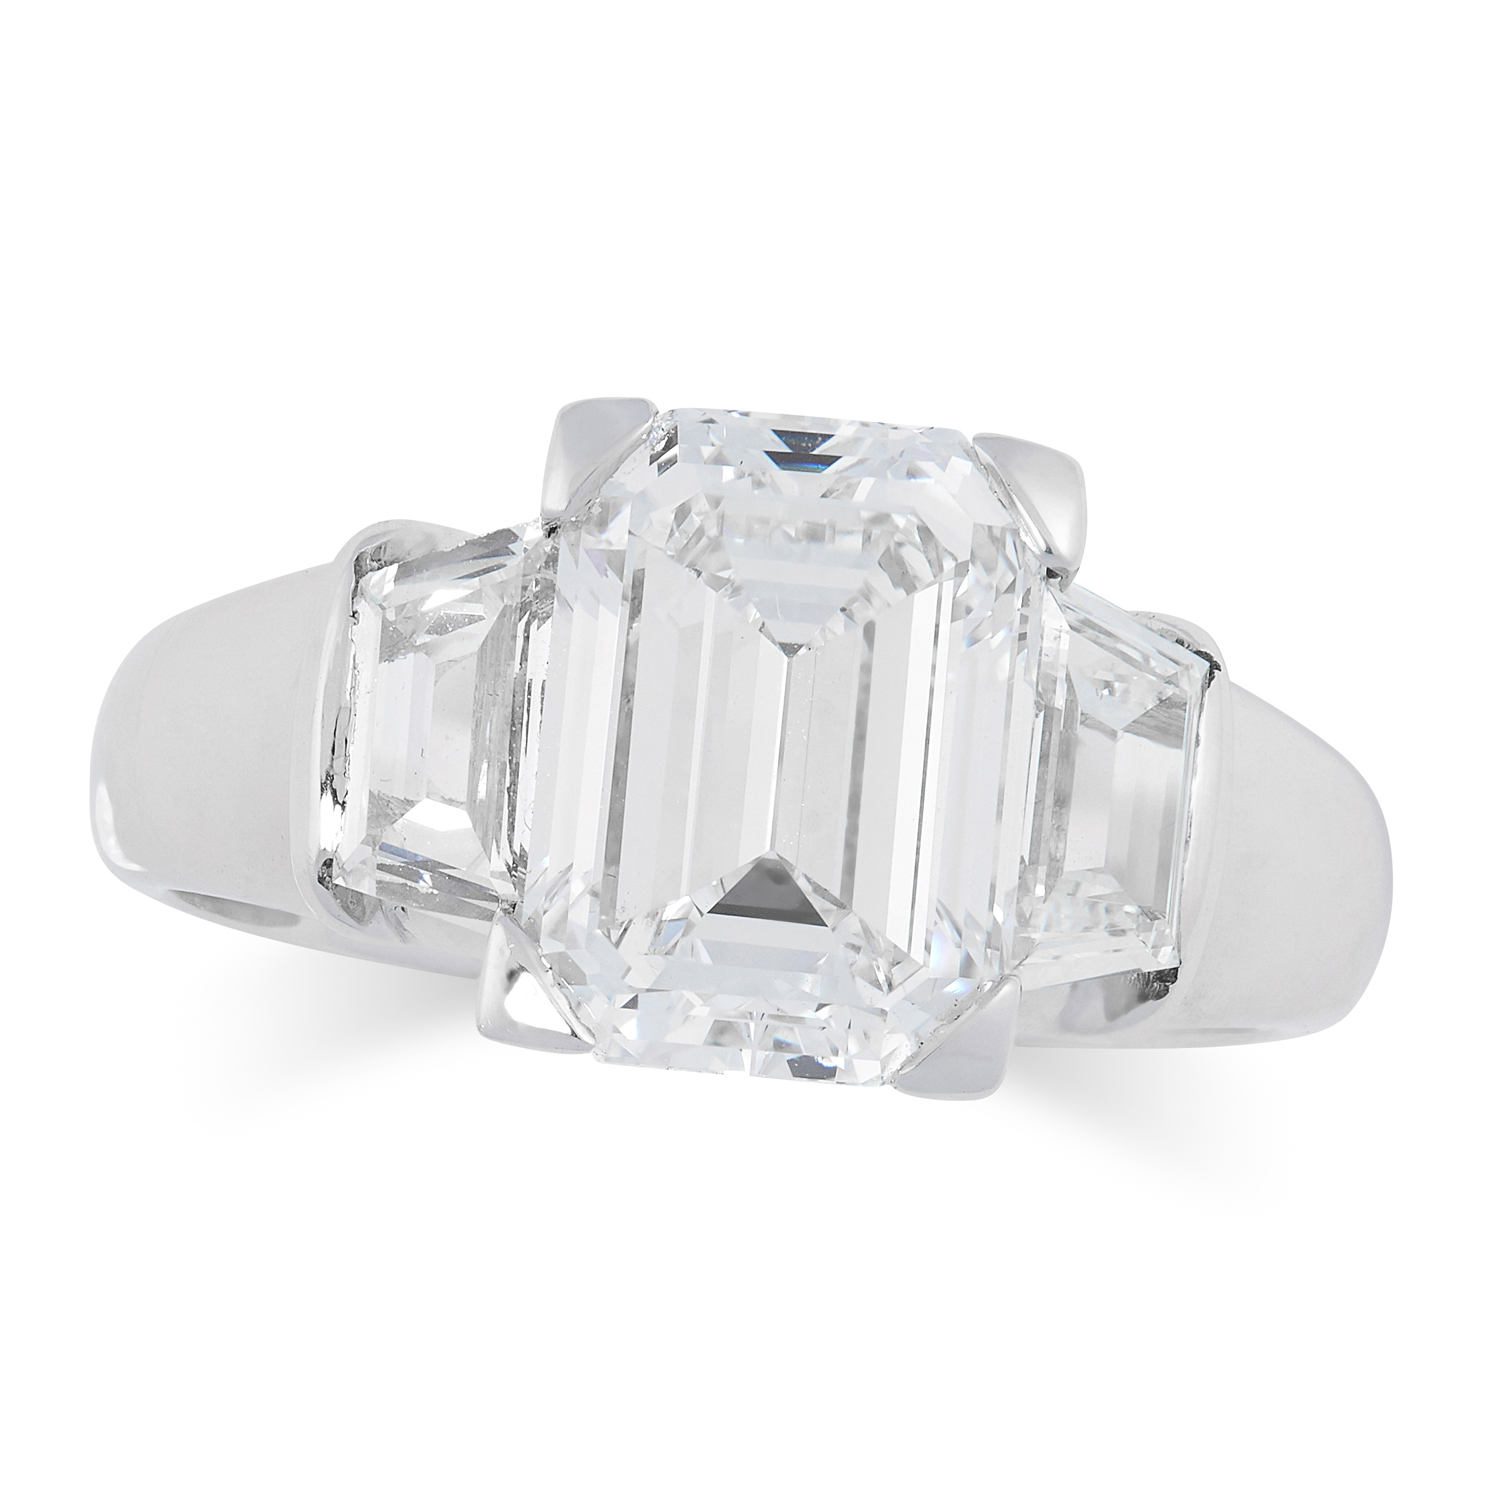 A 3.01 CARAT DIAMOND RING in 18ct white gold, set with an emerald cut diamond of 3.01 carats between